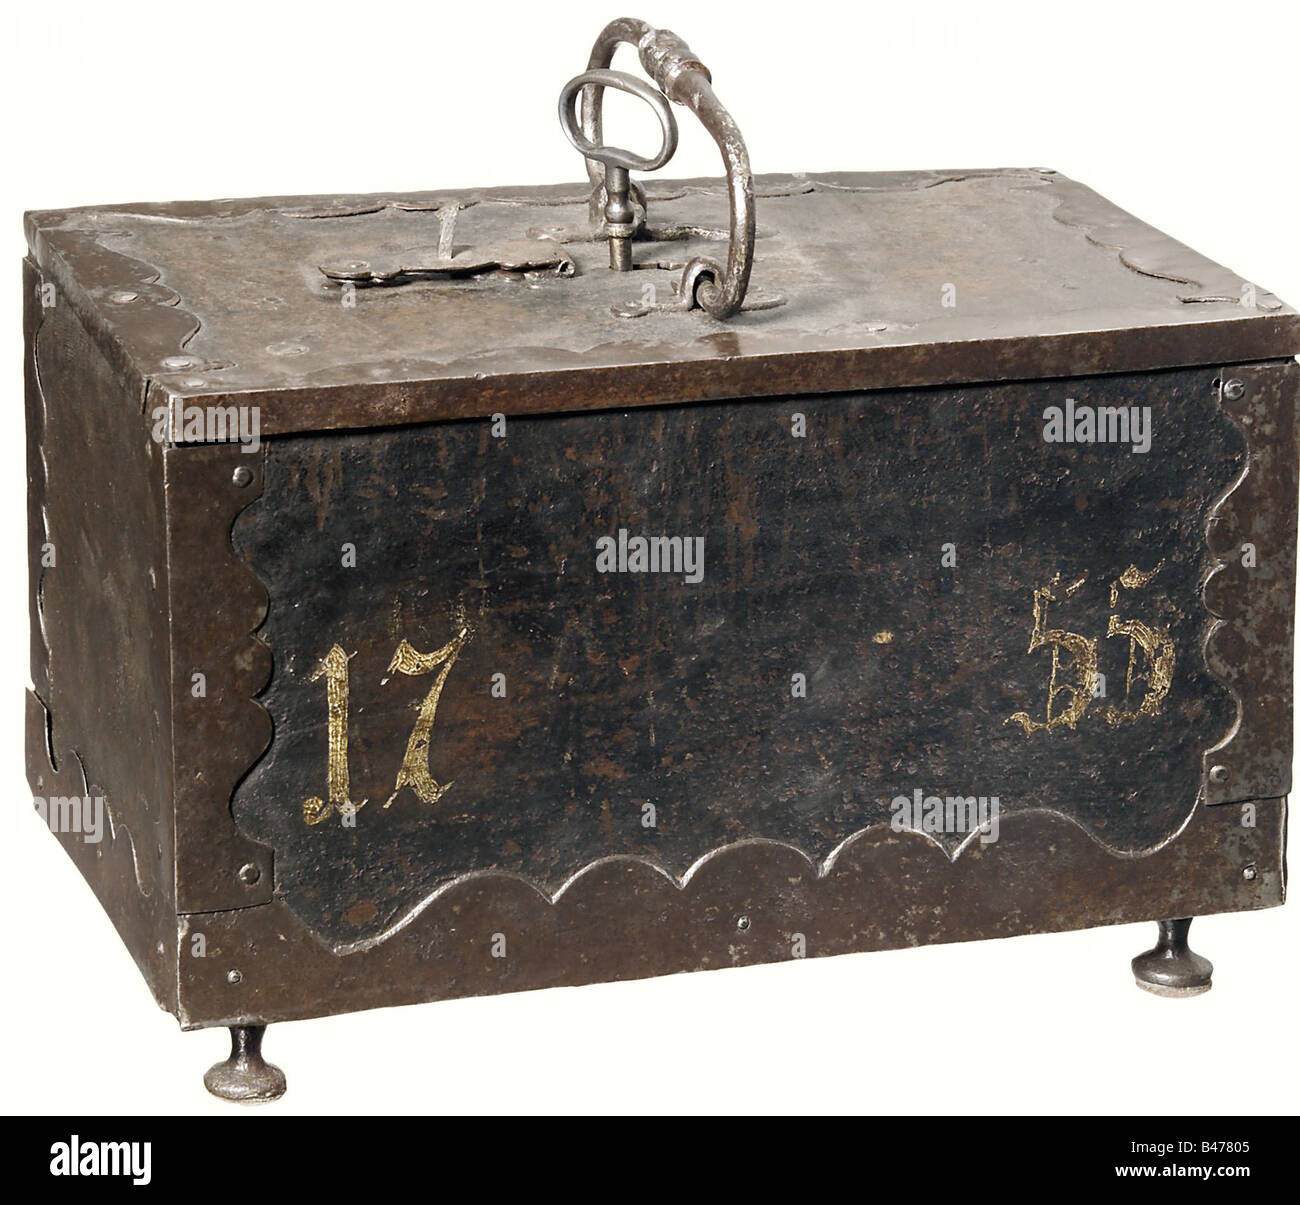 A German iron casket, dated 1755. A massive casket decorated with curved iron mountings on the edges, the covered - Stock Image